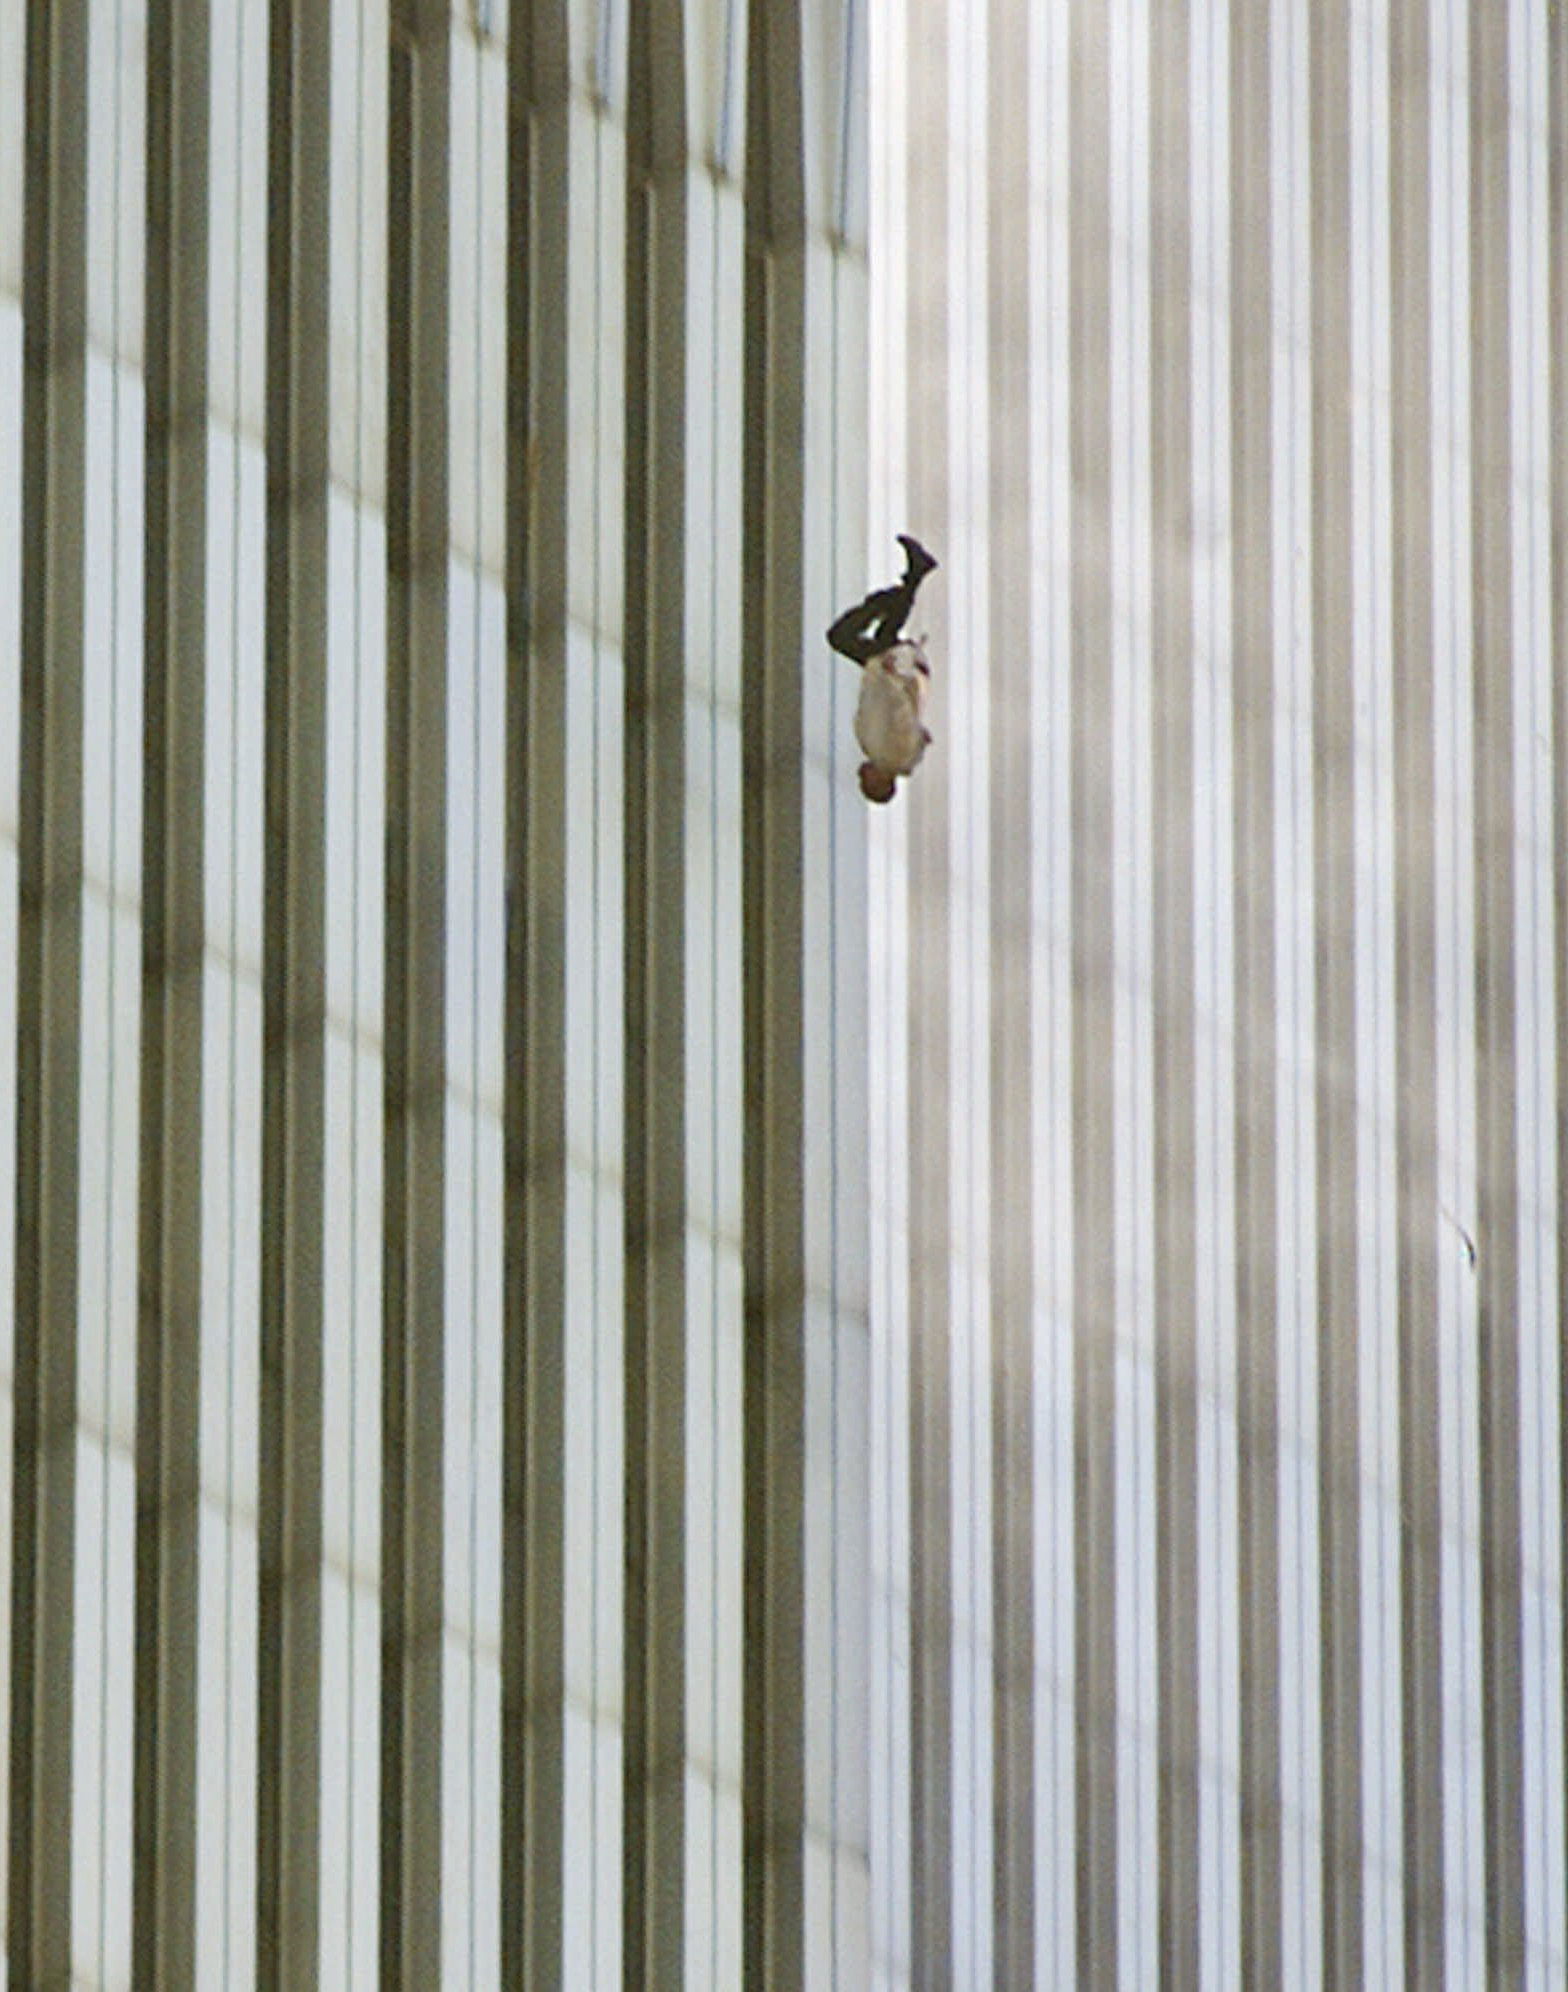 A man jumps to his death from North Tower of the World Trade Center on Sept. 11, 2001.